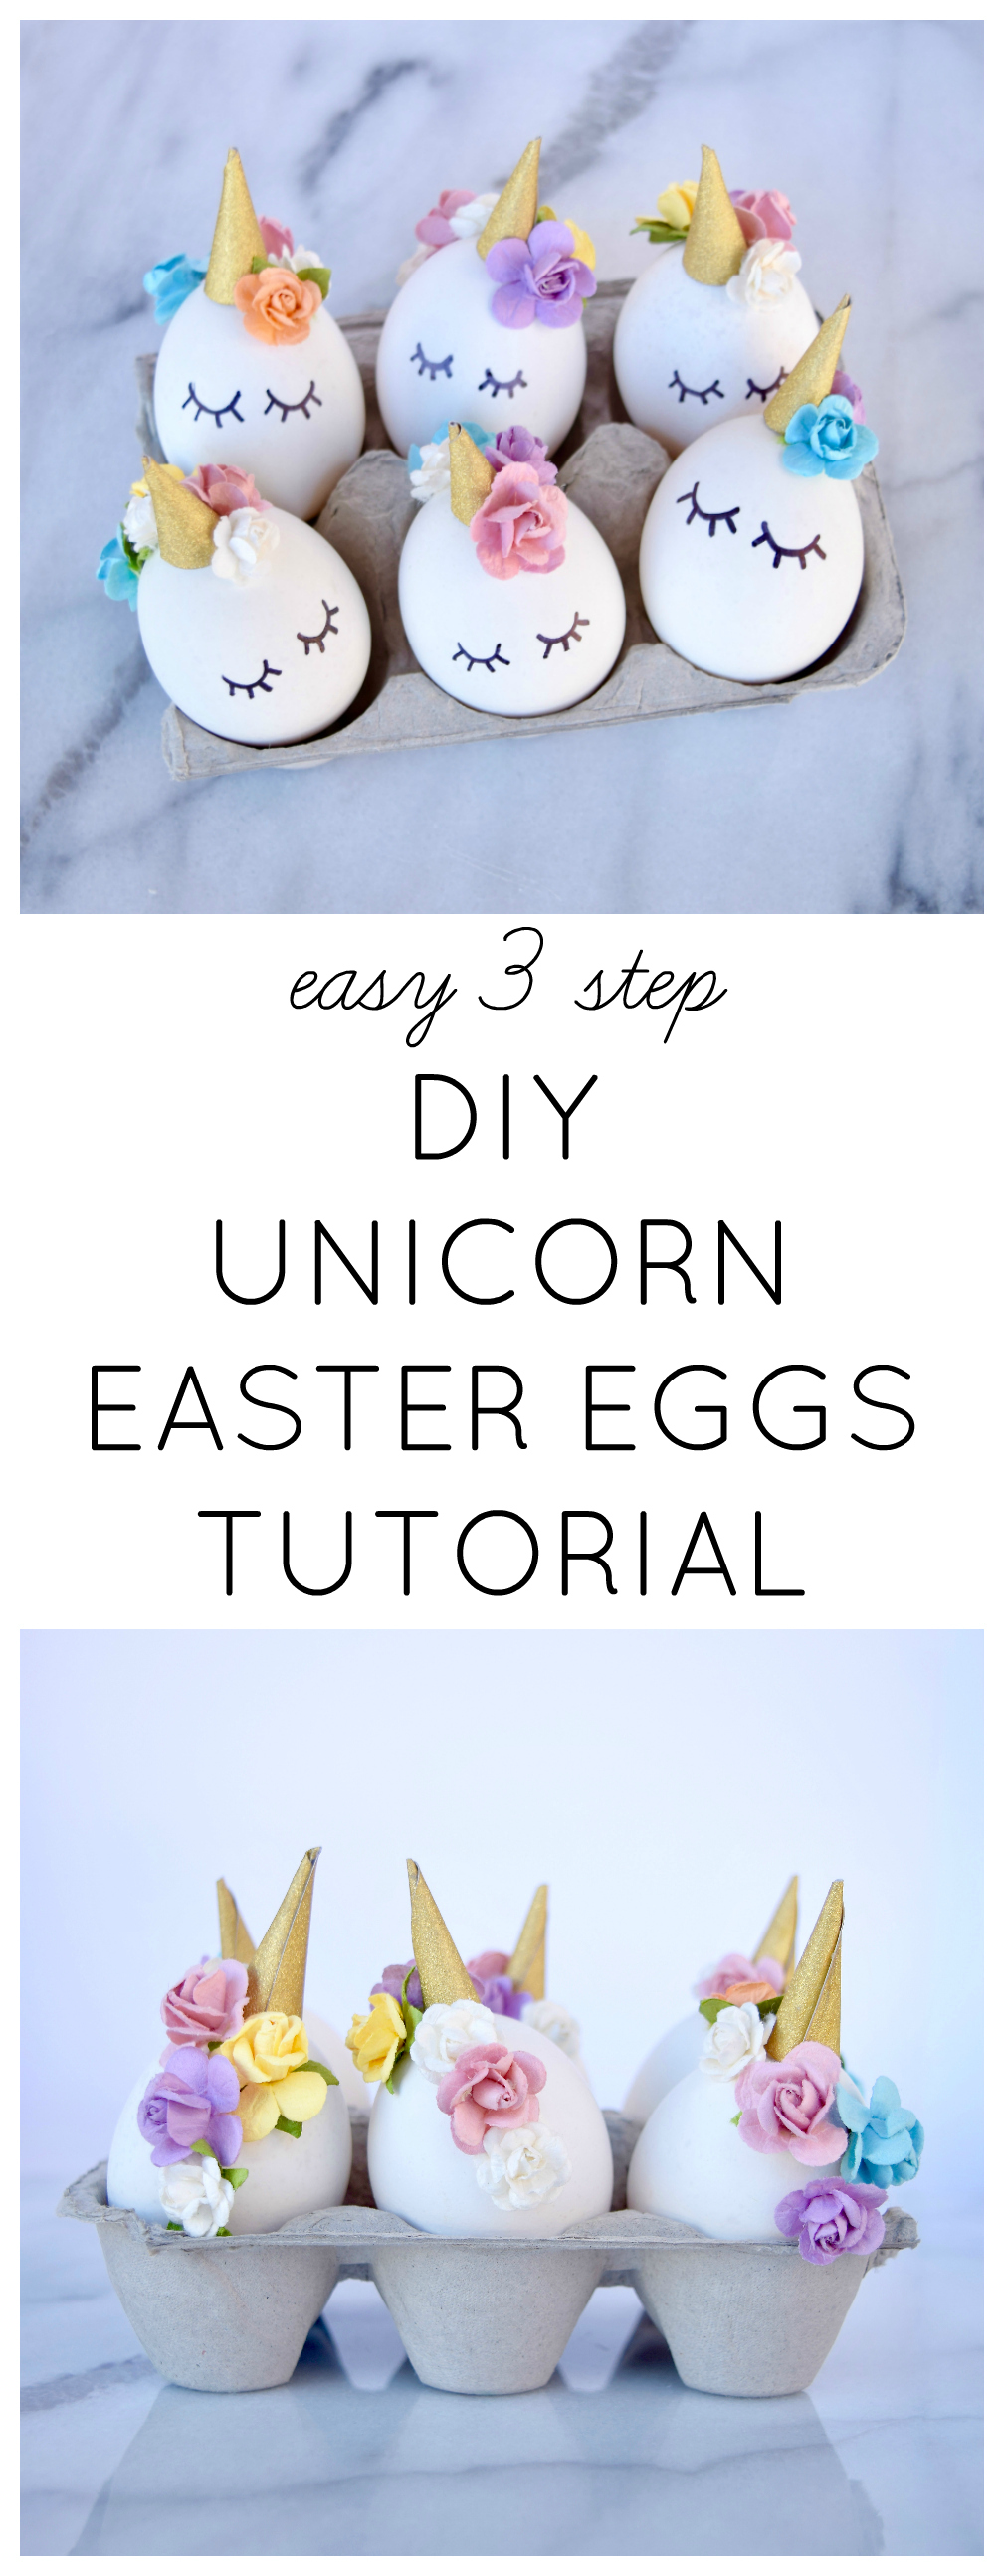 EASY 3 STEP DIY UNICORN EASTER EGGS TUTORIAL